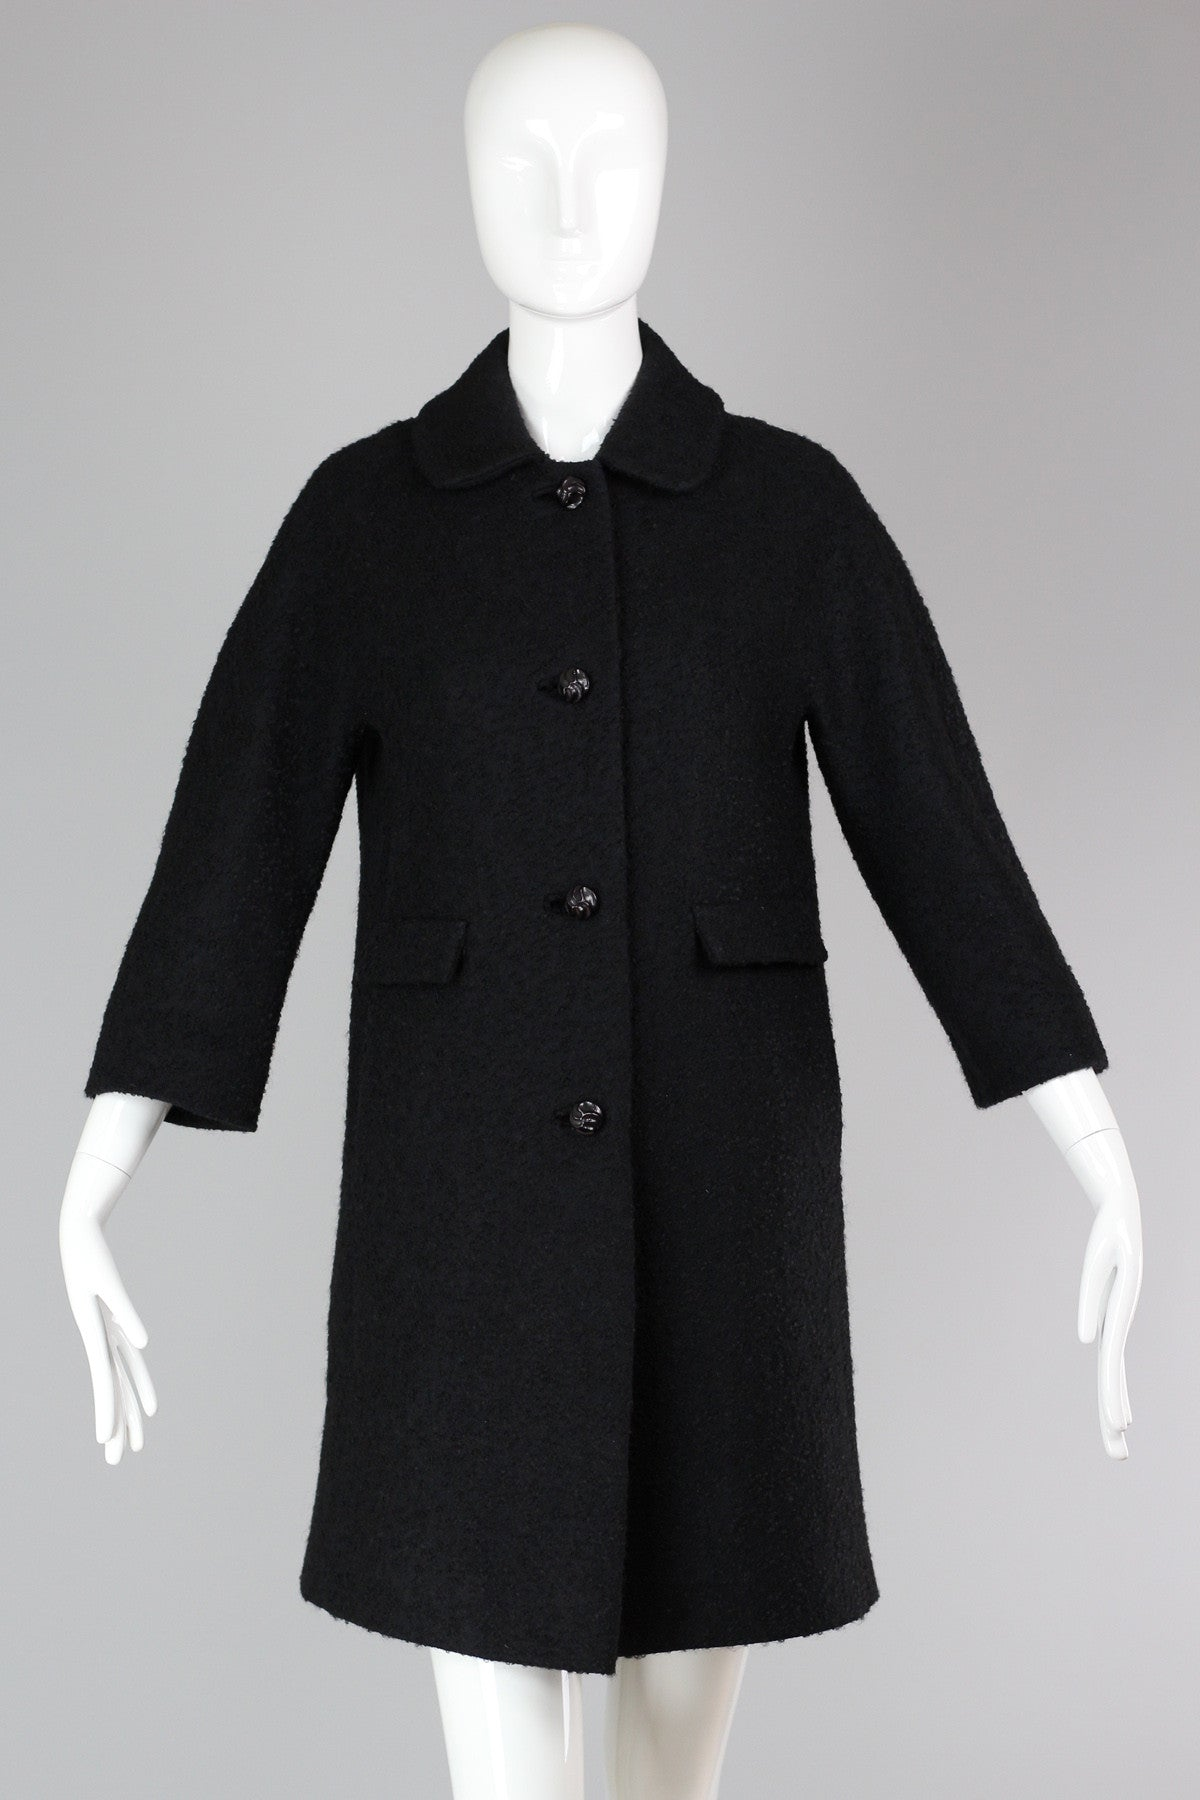 b5c00eaf5f3 Vintage 1950s-60s Black Boucle Car Coat with 3 4 Sleeves – The ...